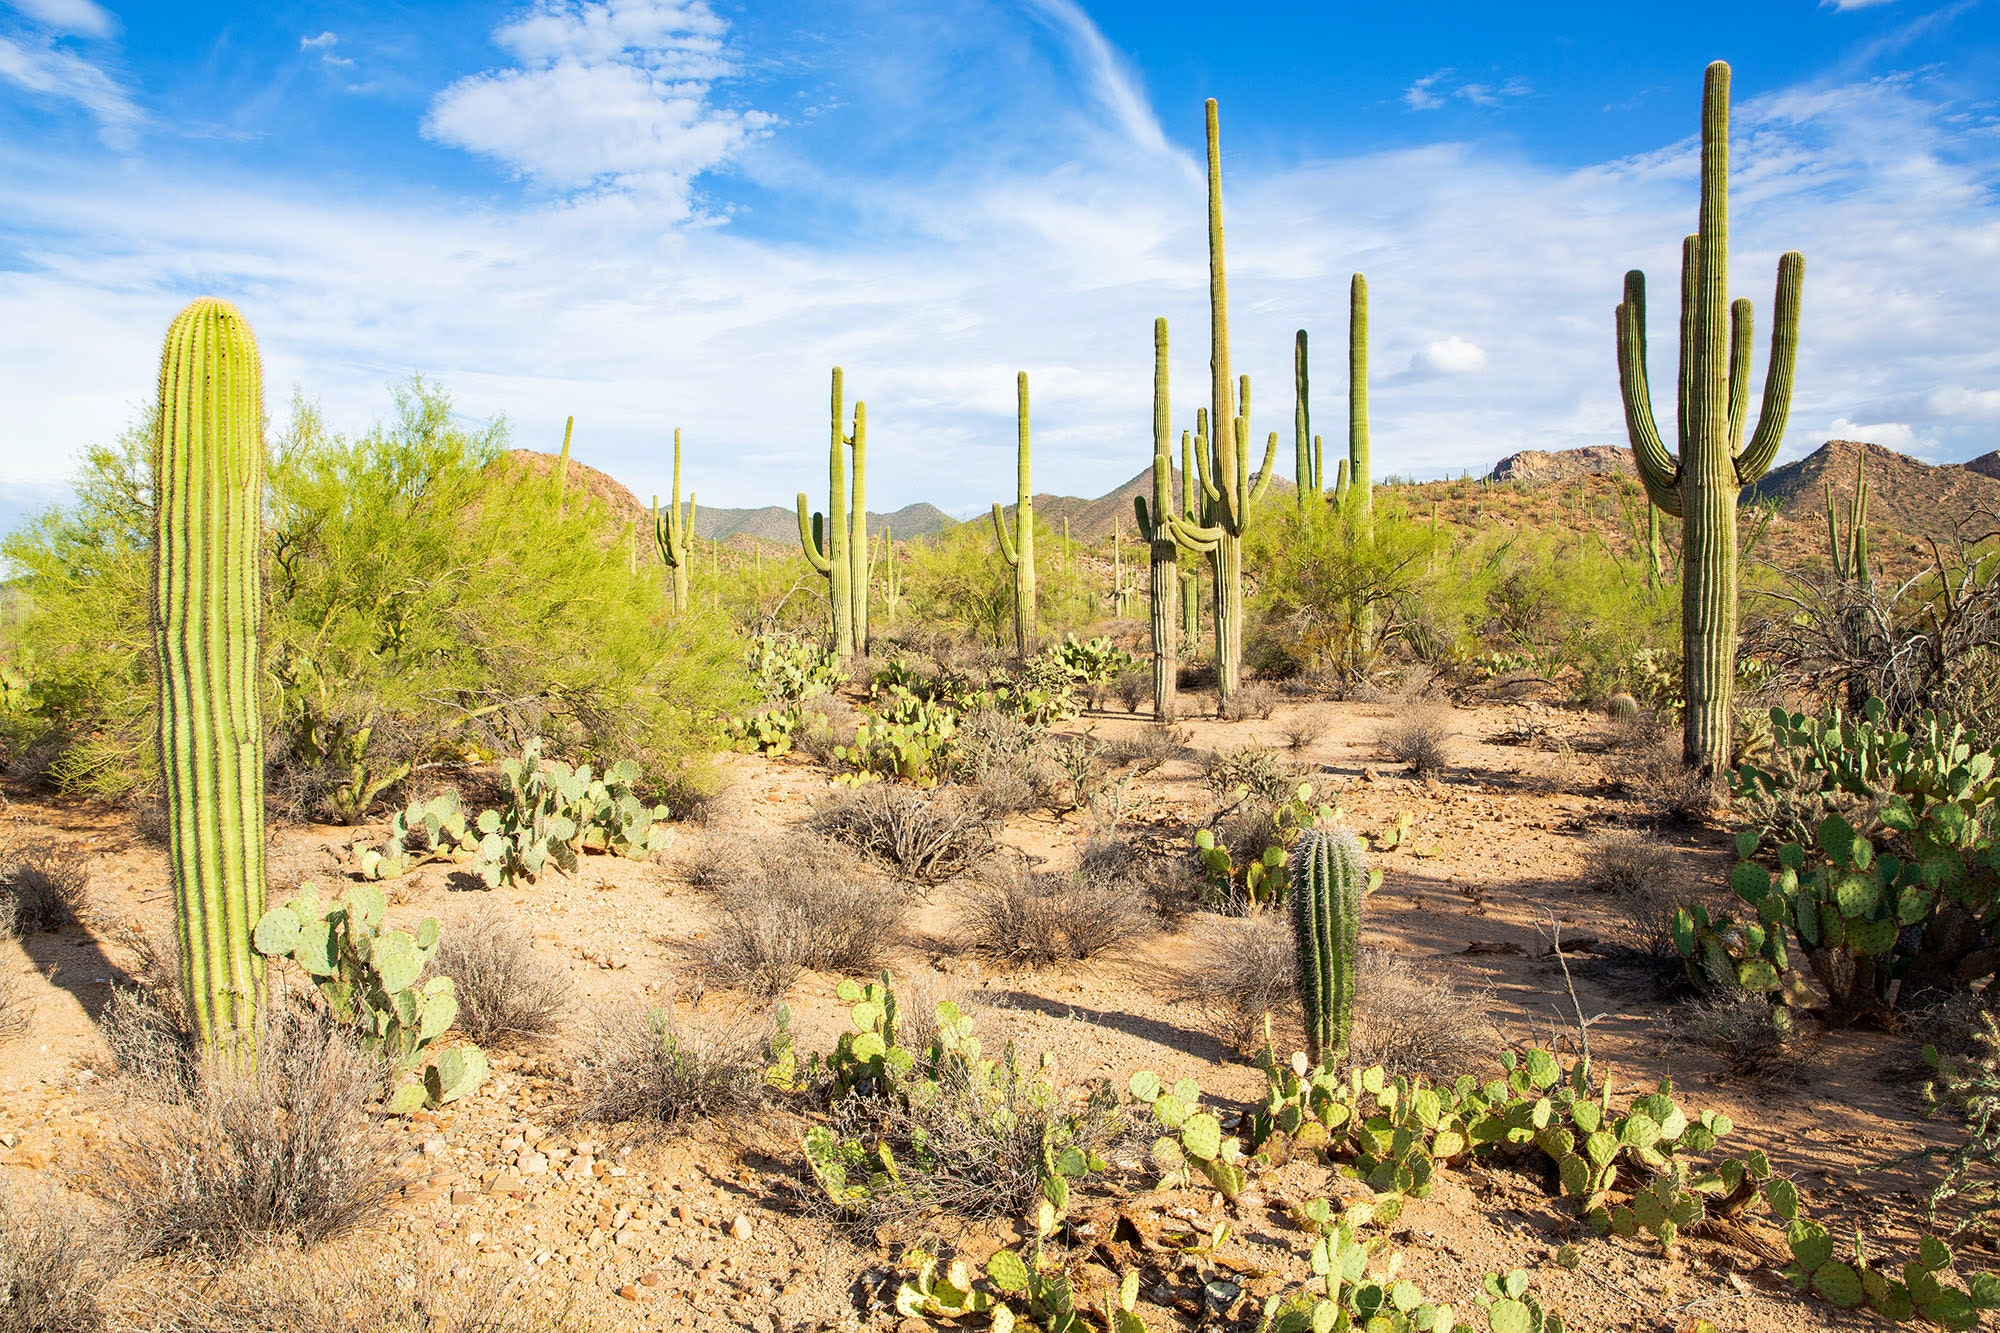 The iconic, long-armed cacti at Saguaro National Park only grow in the Sonoran desert.